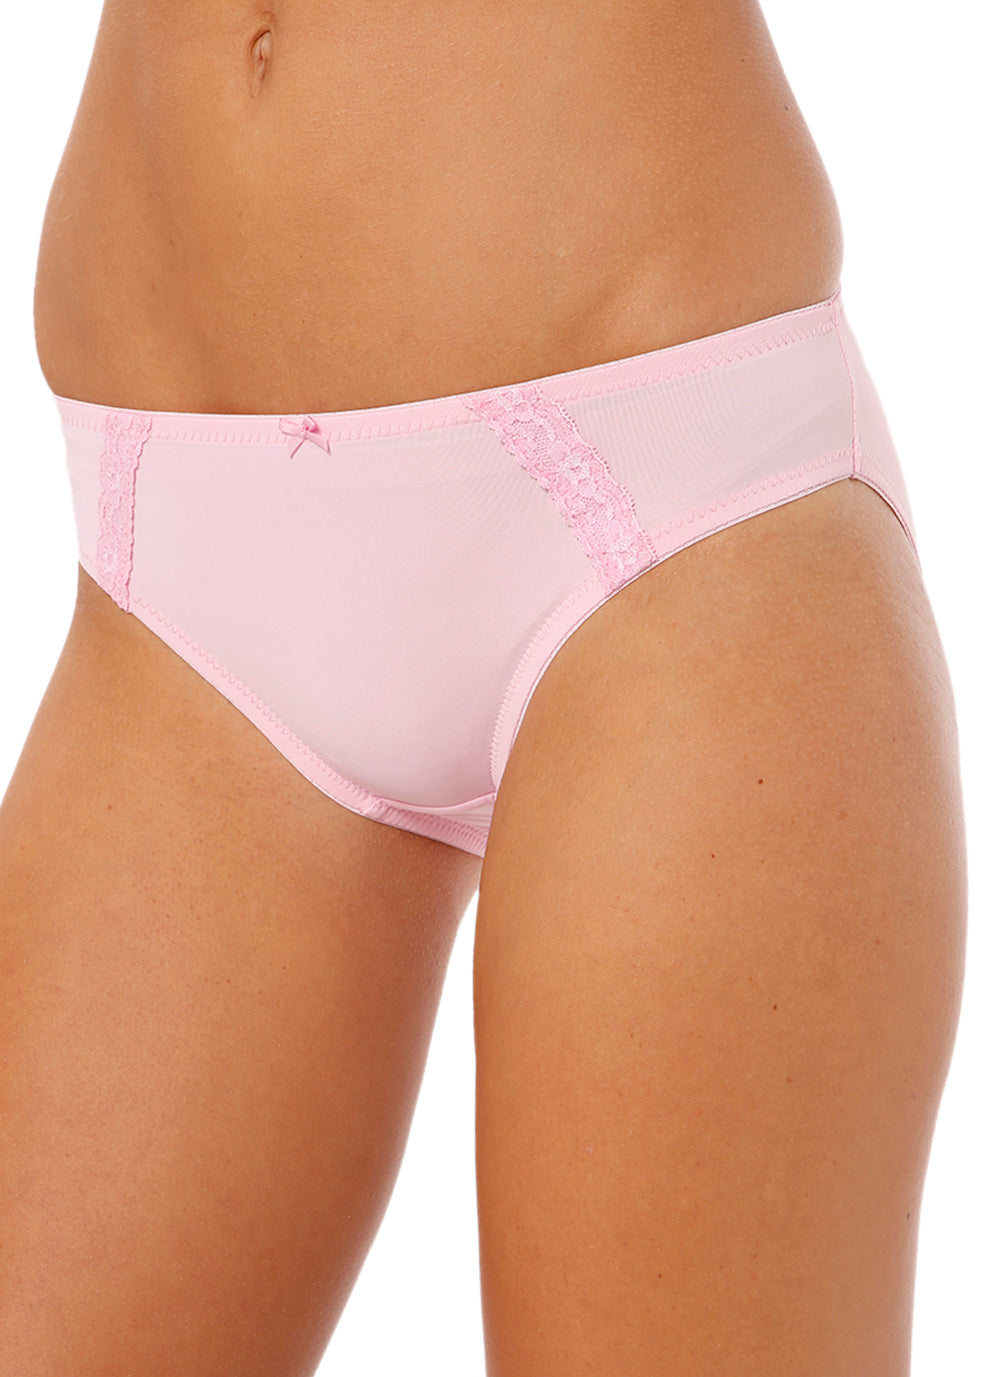 Tilly BRIEF Pink